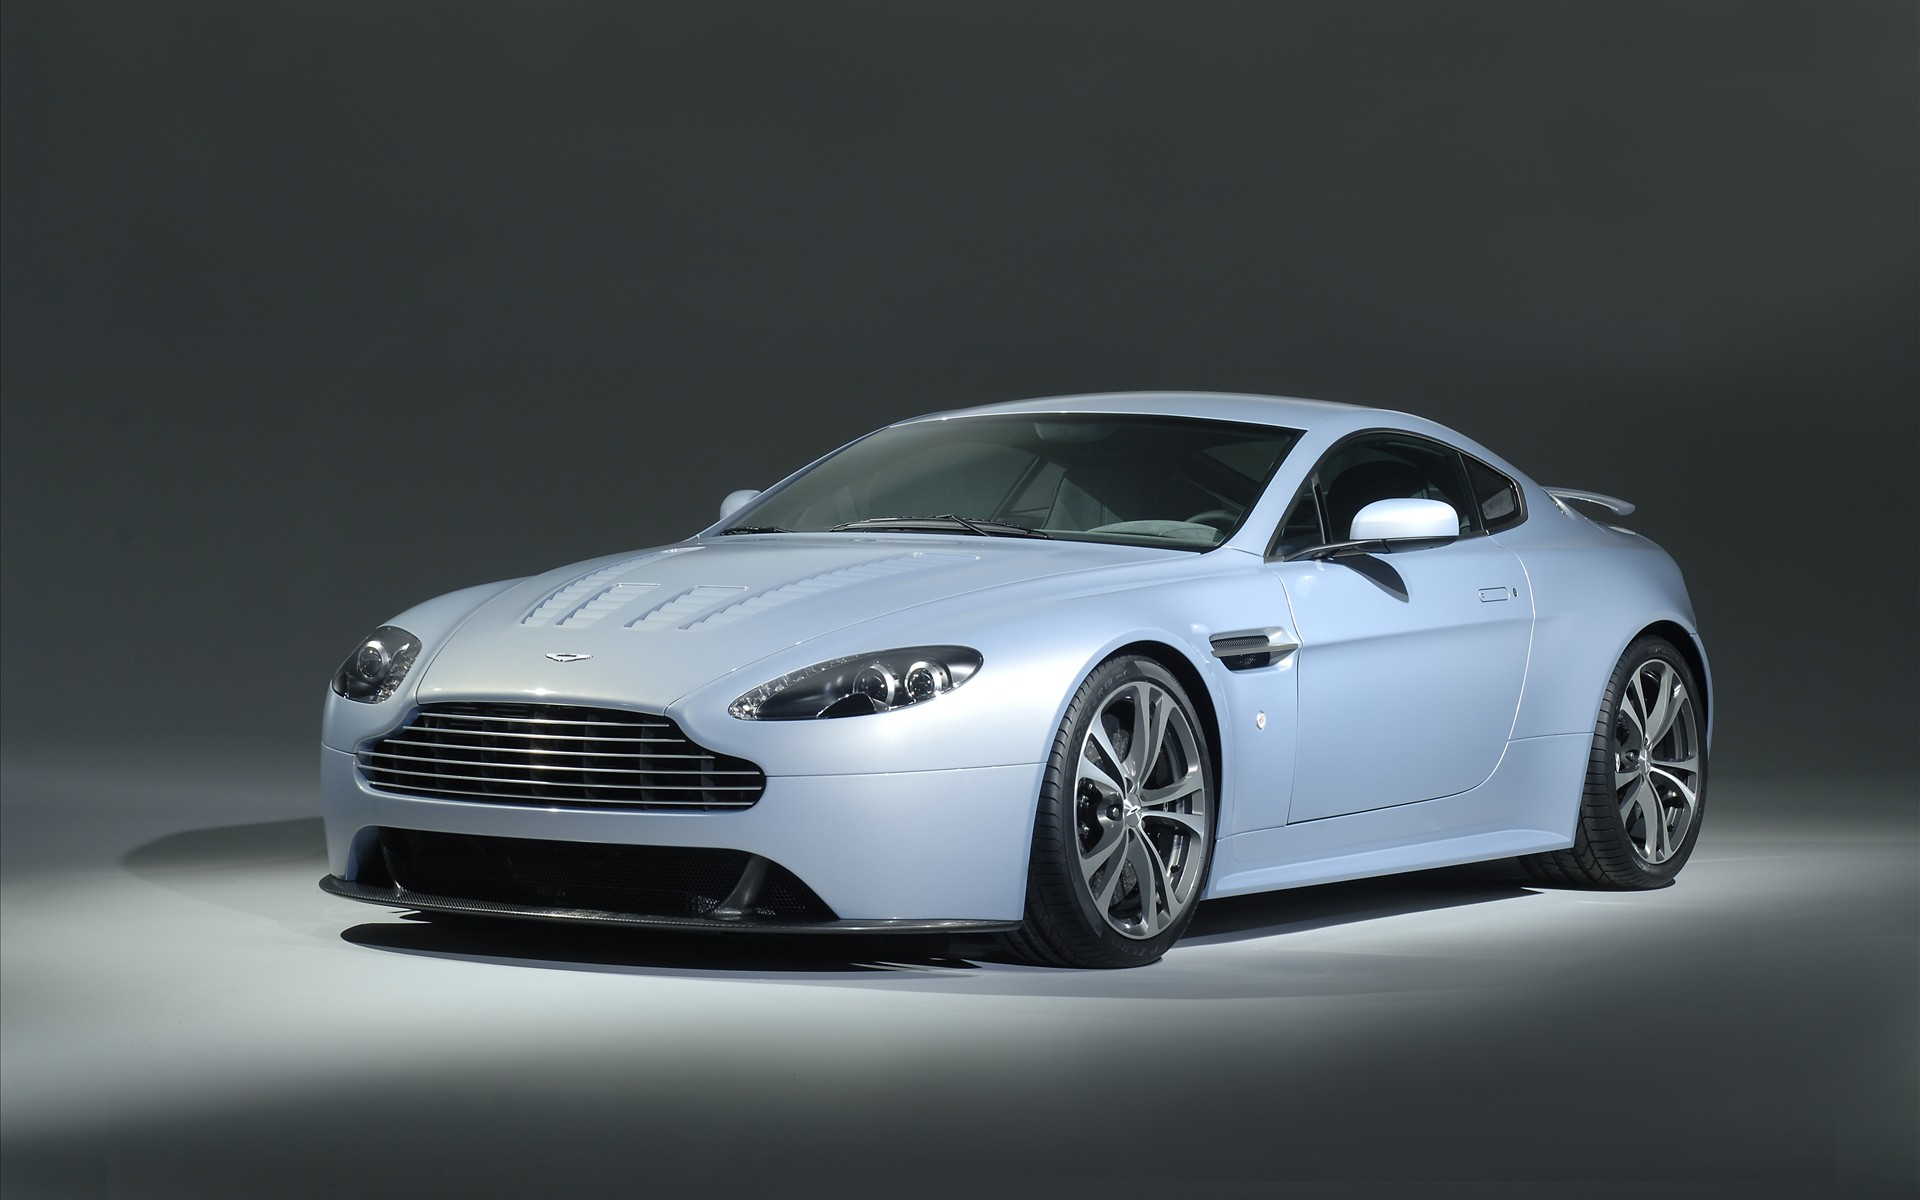 Aston Martin V12 Vantage Wallpapers, Pictures, Images